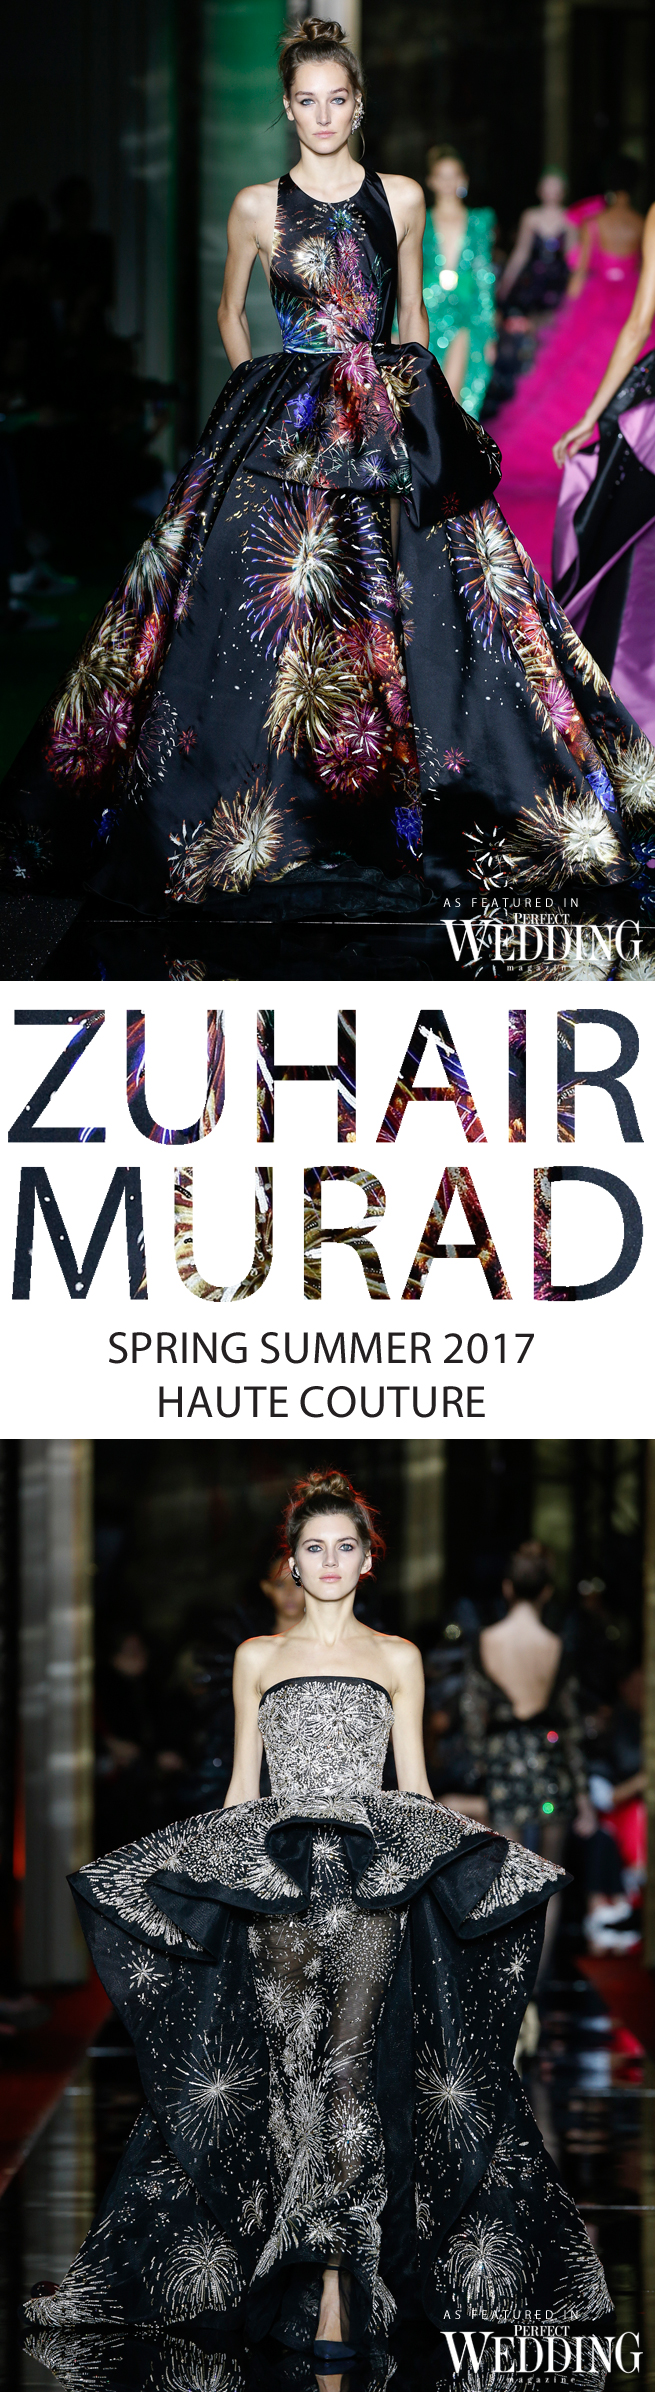 Zuhair Murad, Zuhair Murad Bride, Zuhair Murad Spring Summer 2017 Haute Couture, Paris Fashion Week, Couture Week, Perfect Wedding Magazine, Perfect Wedding Blog, Fires Waltz, Bridal Trends